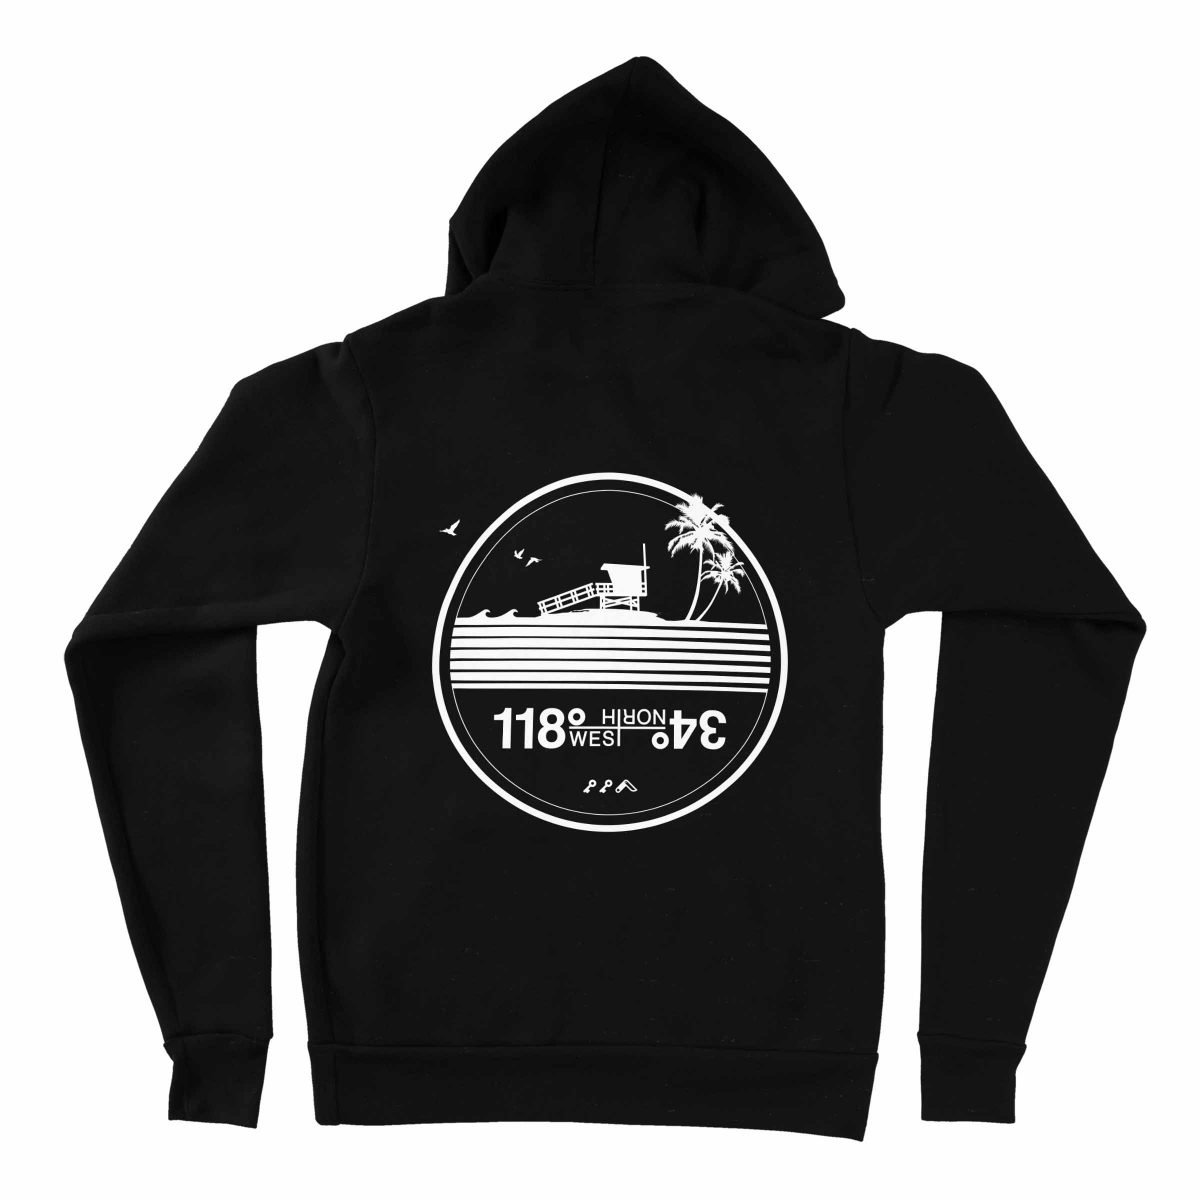 manhattan beach hoodies by kikicutt sweatshirt store